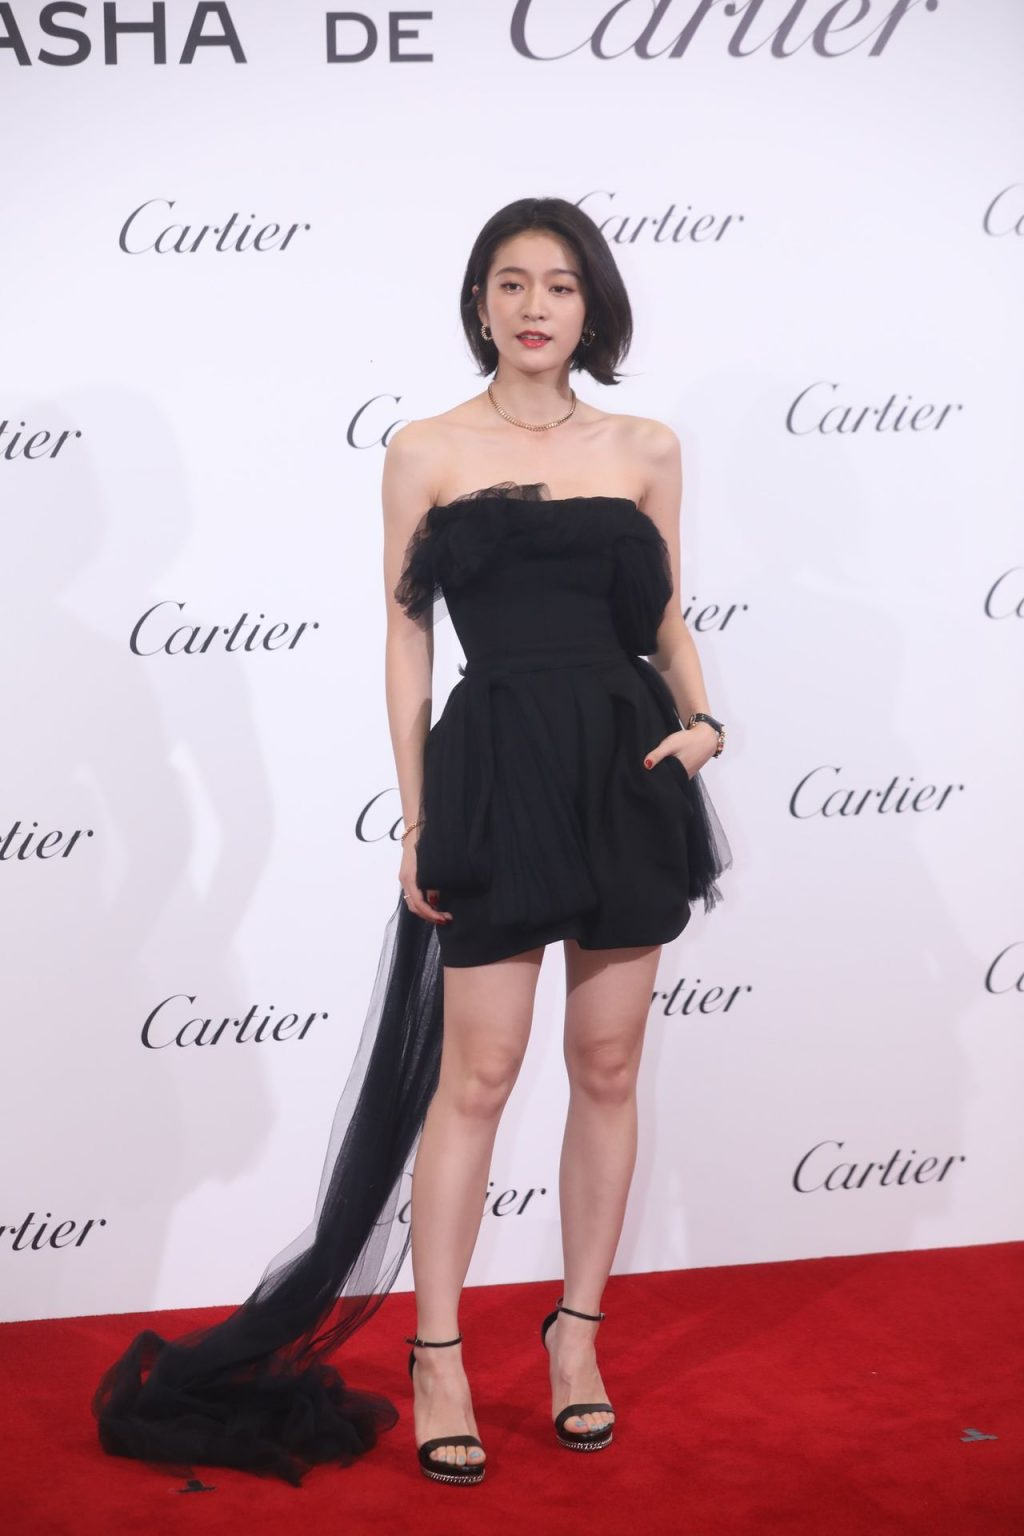 Zhang Xueying Shows Off Her Sexy Legs at a Promotional Event (17 Photos)